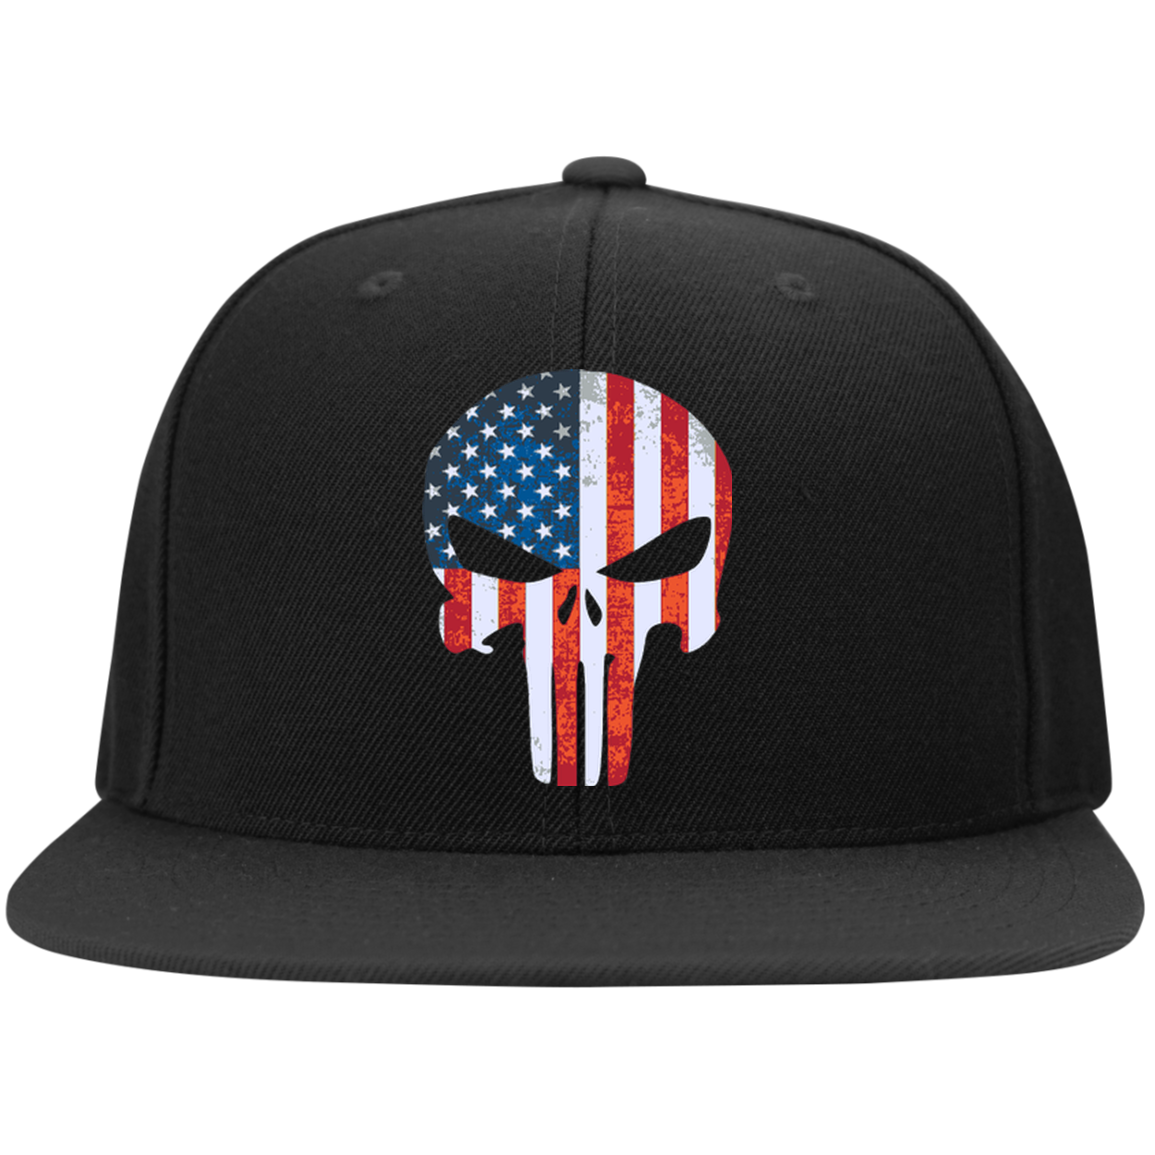 The Punisher Flat Bill High-Profile Snapback Hat